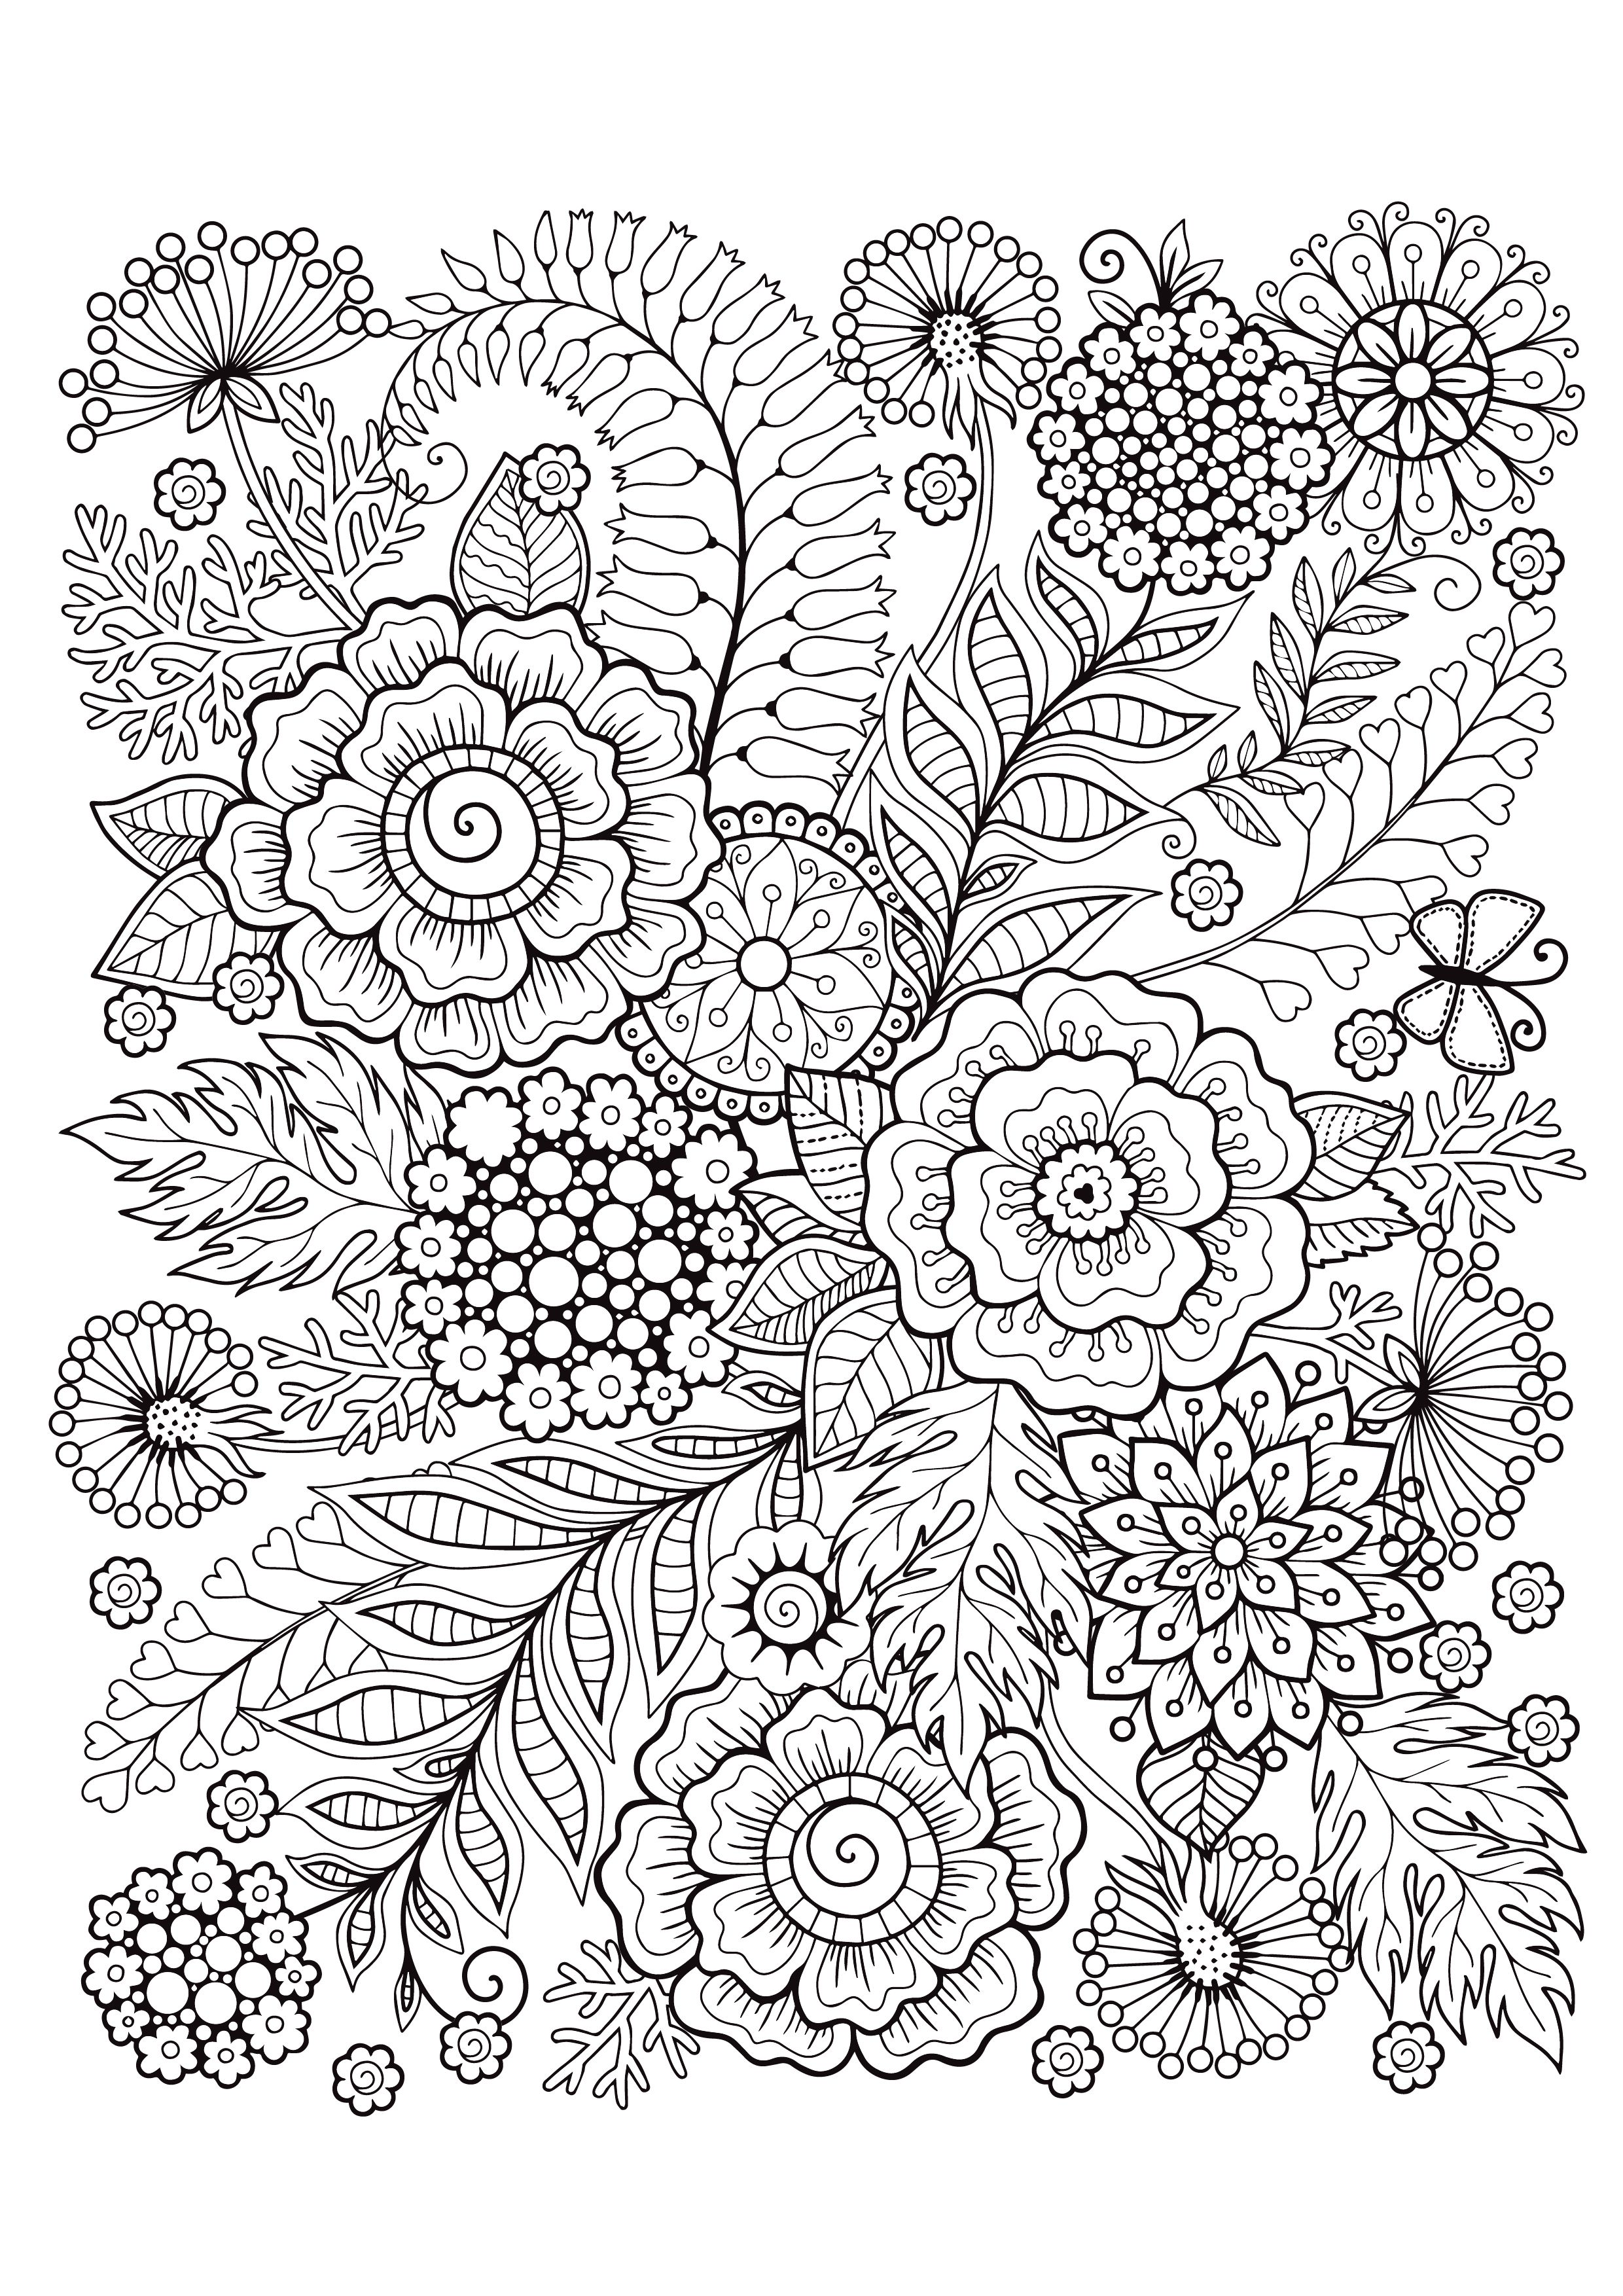 Mindfulness Coloring Pages 12 Flowers Mindfulness Colouring